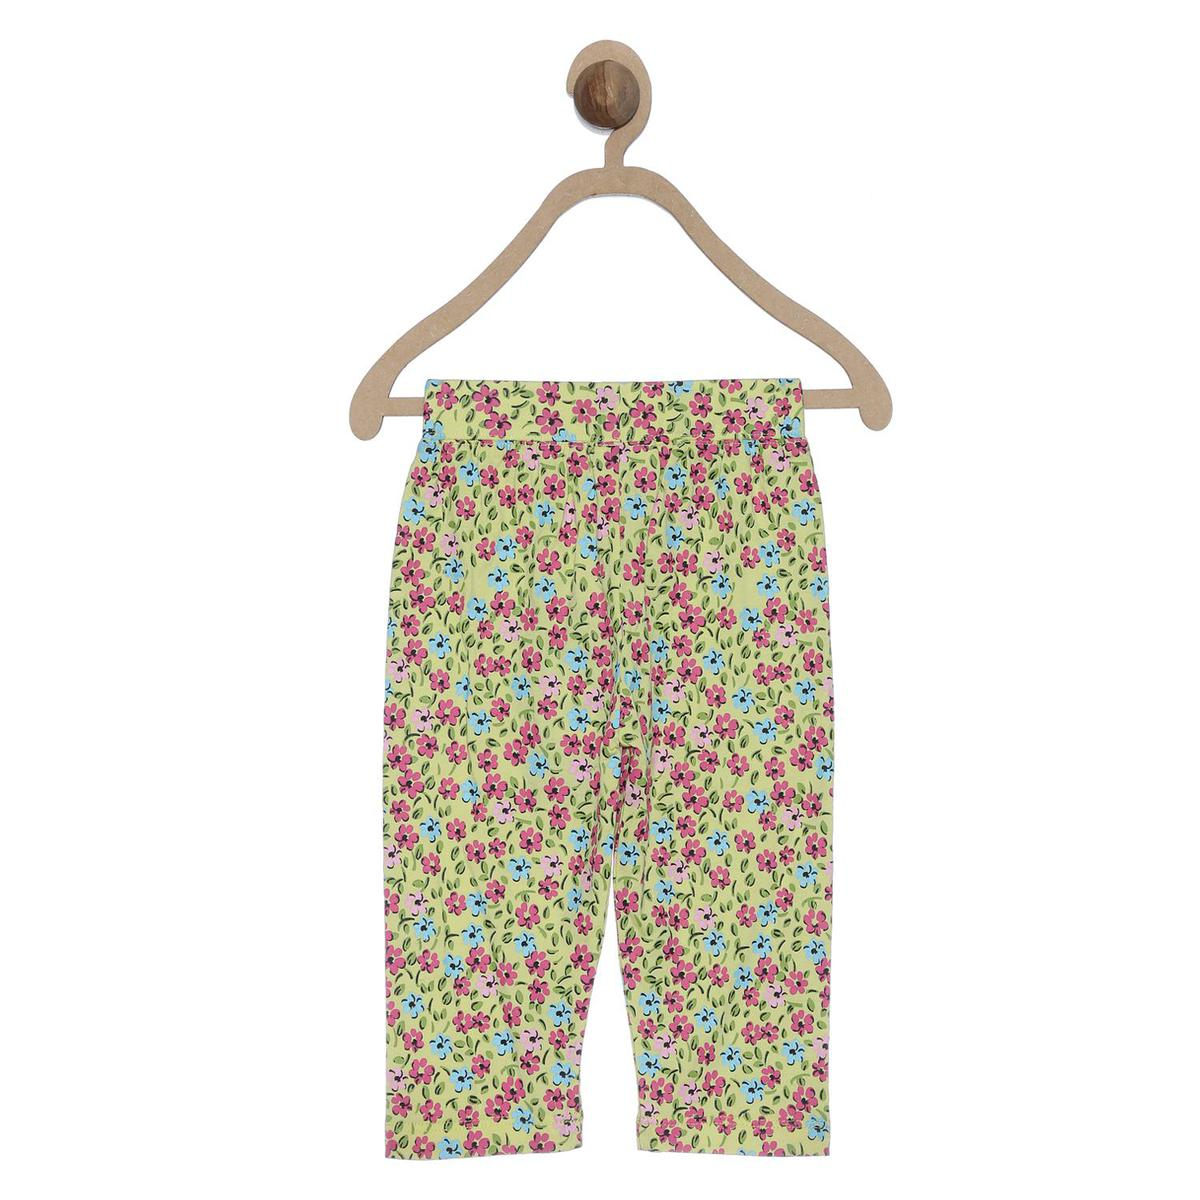 612 League - Yellow Colored Tights Floral Printed Leggings For Baby Girls